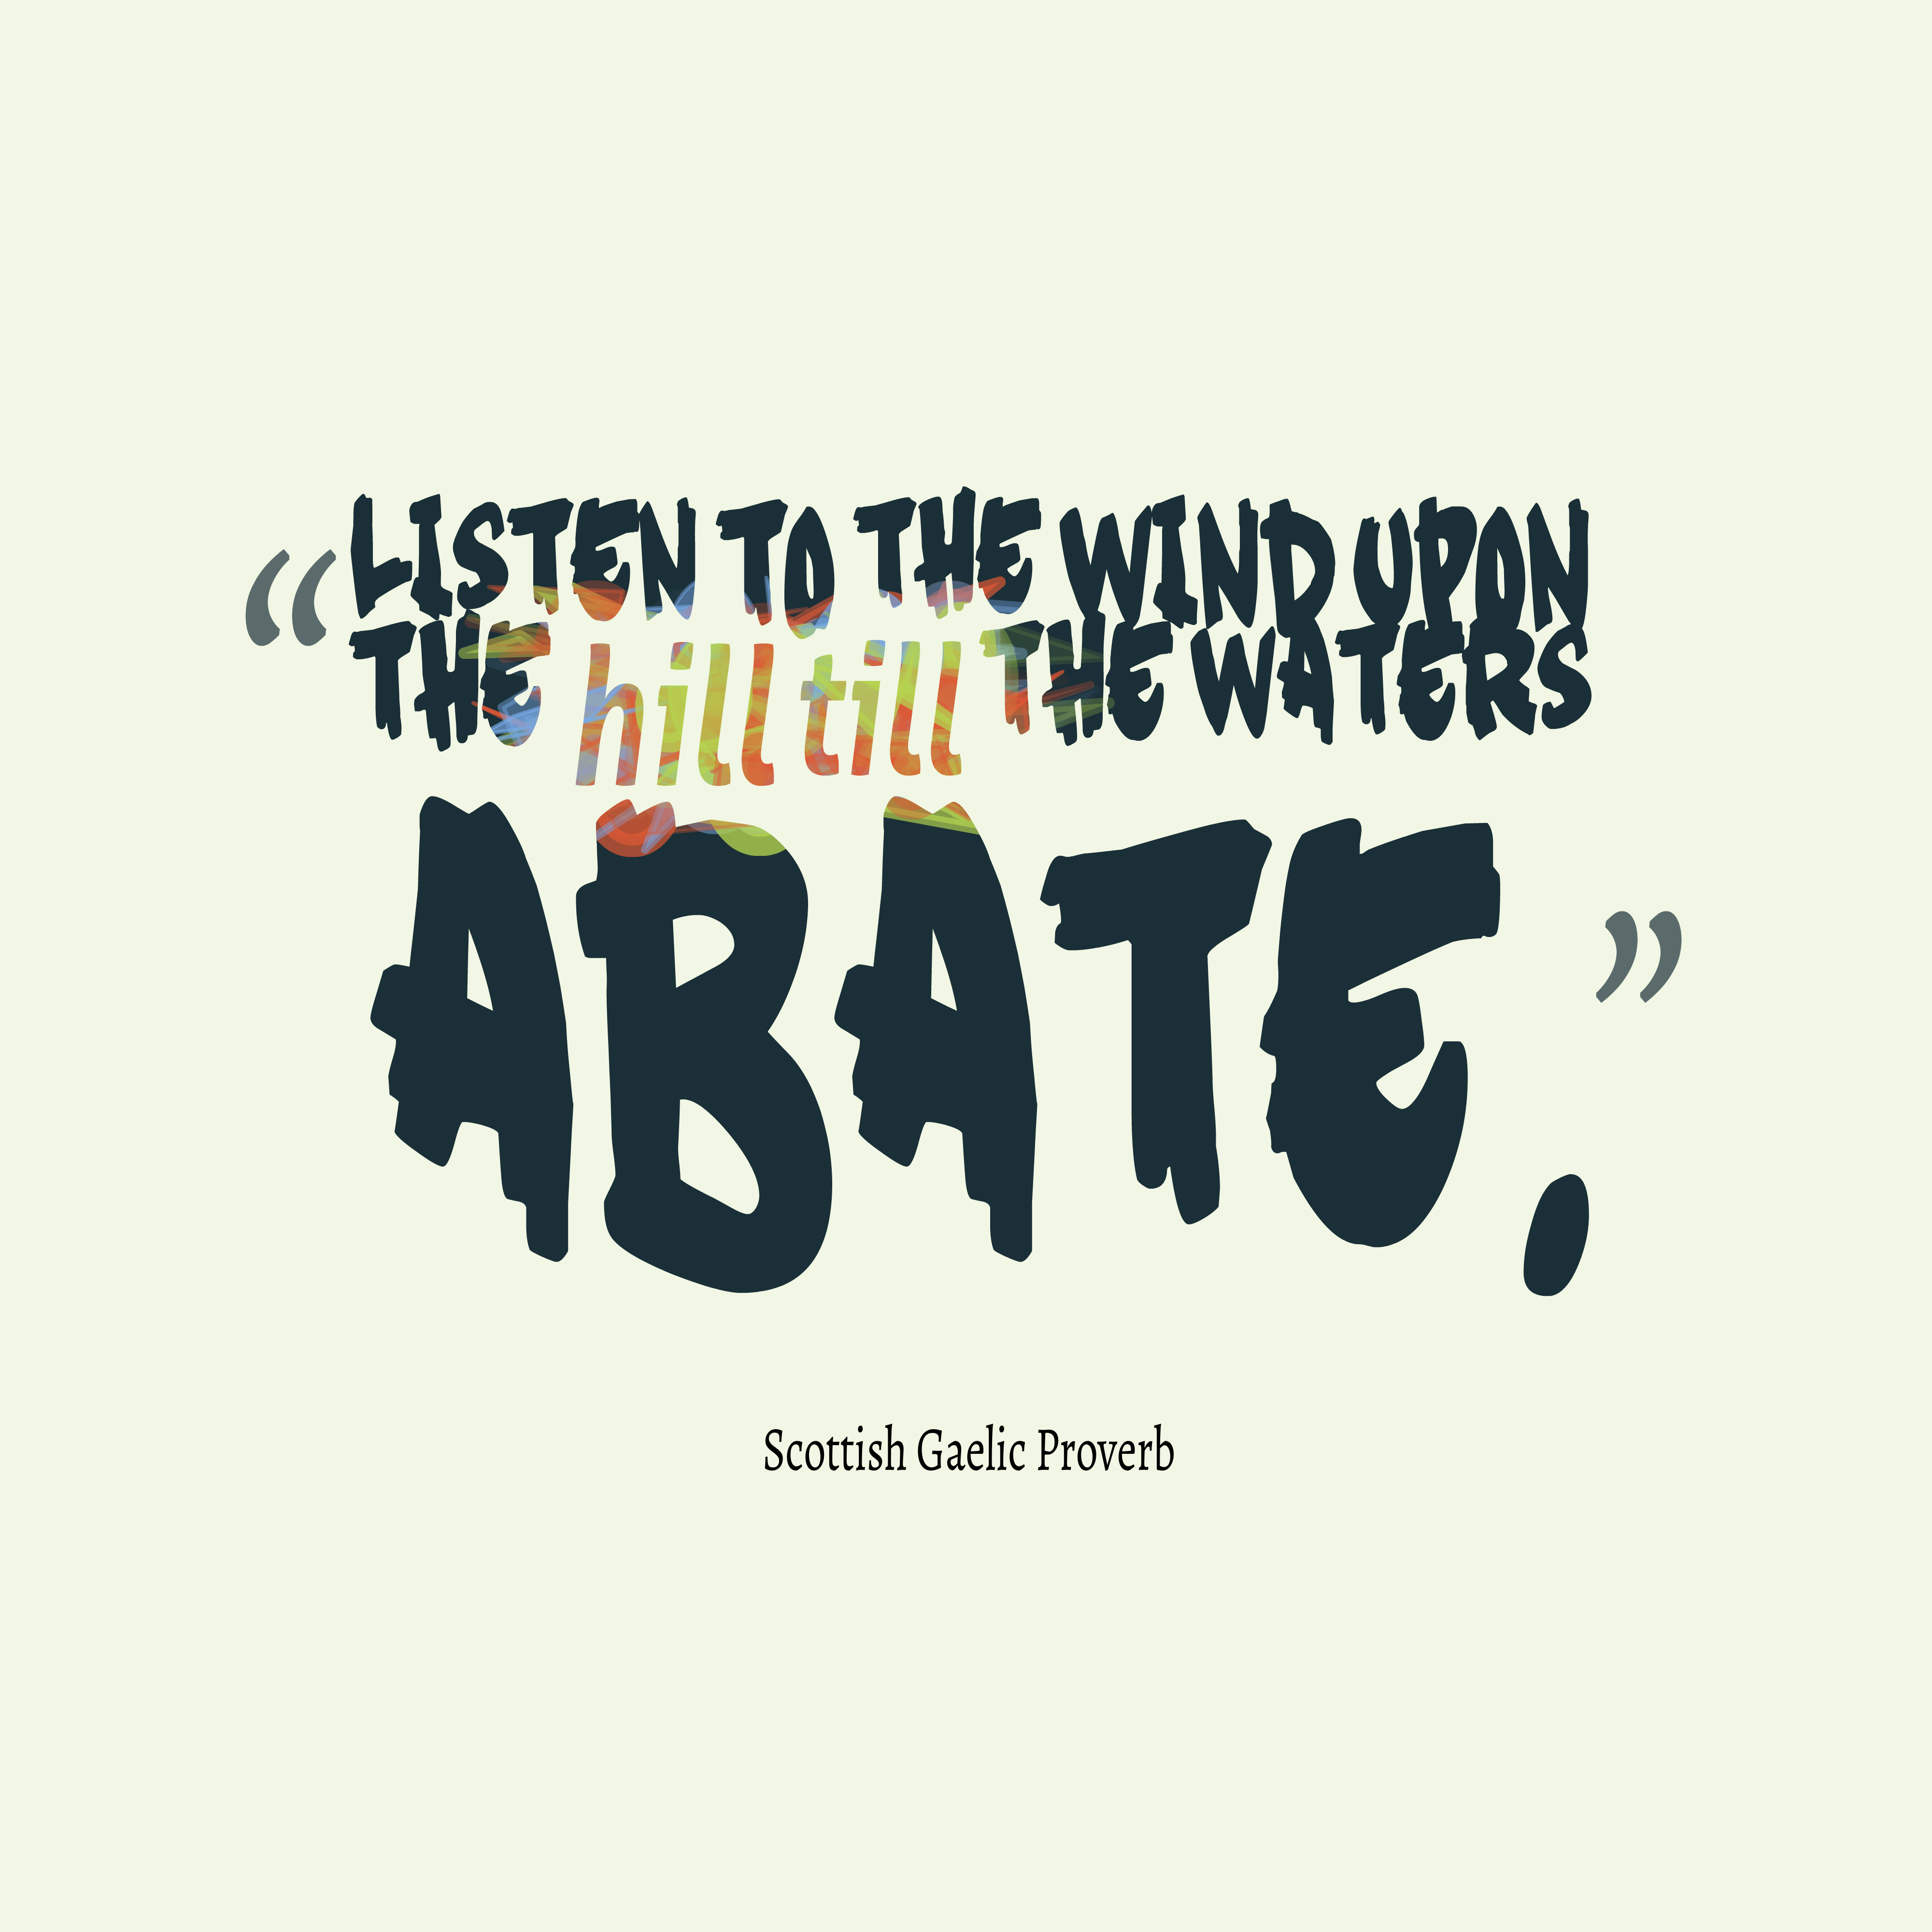 Quotes image of Listen to the wind upon the hill till the waters abate.